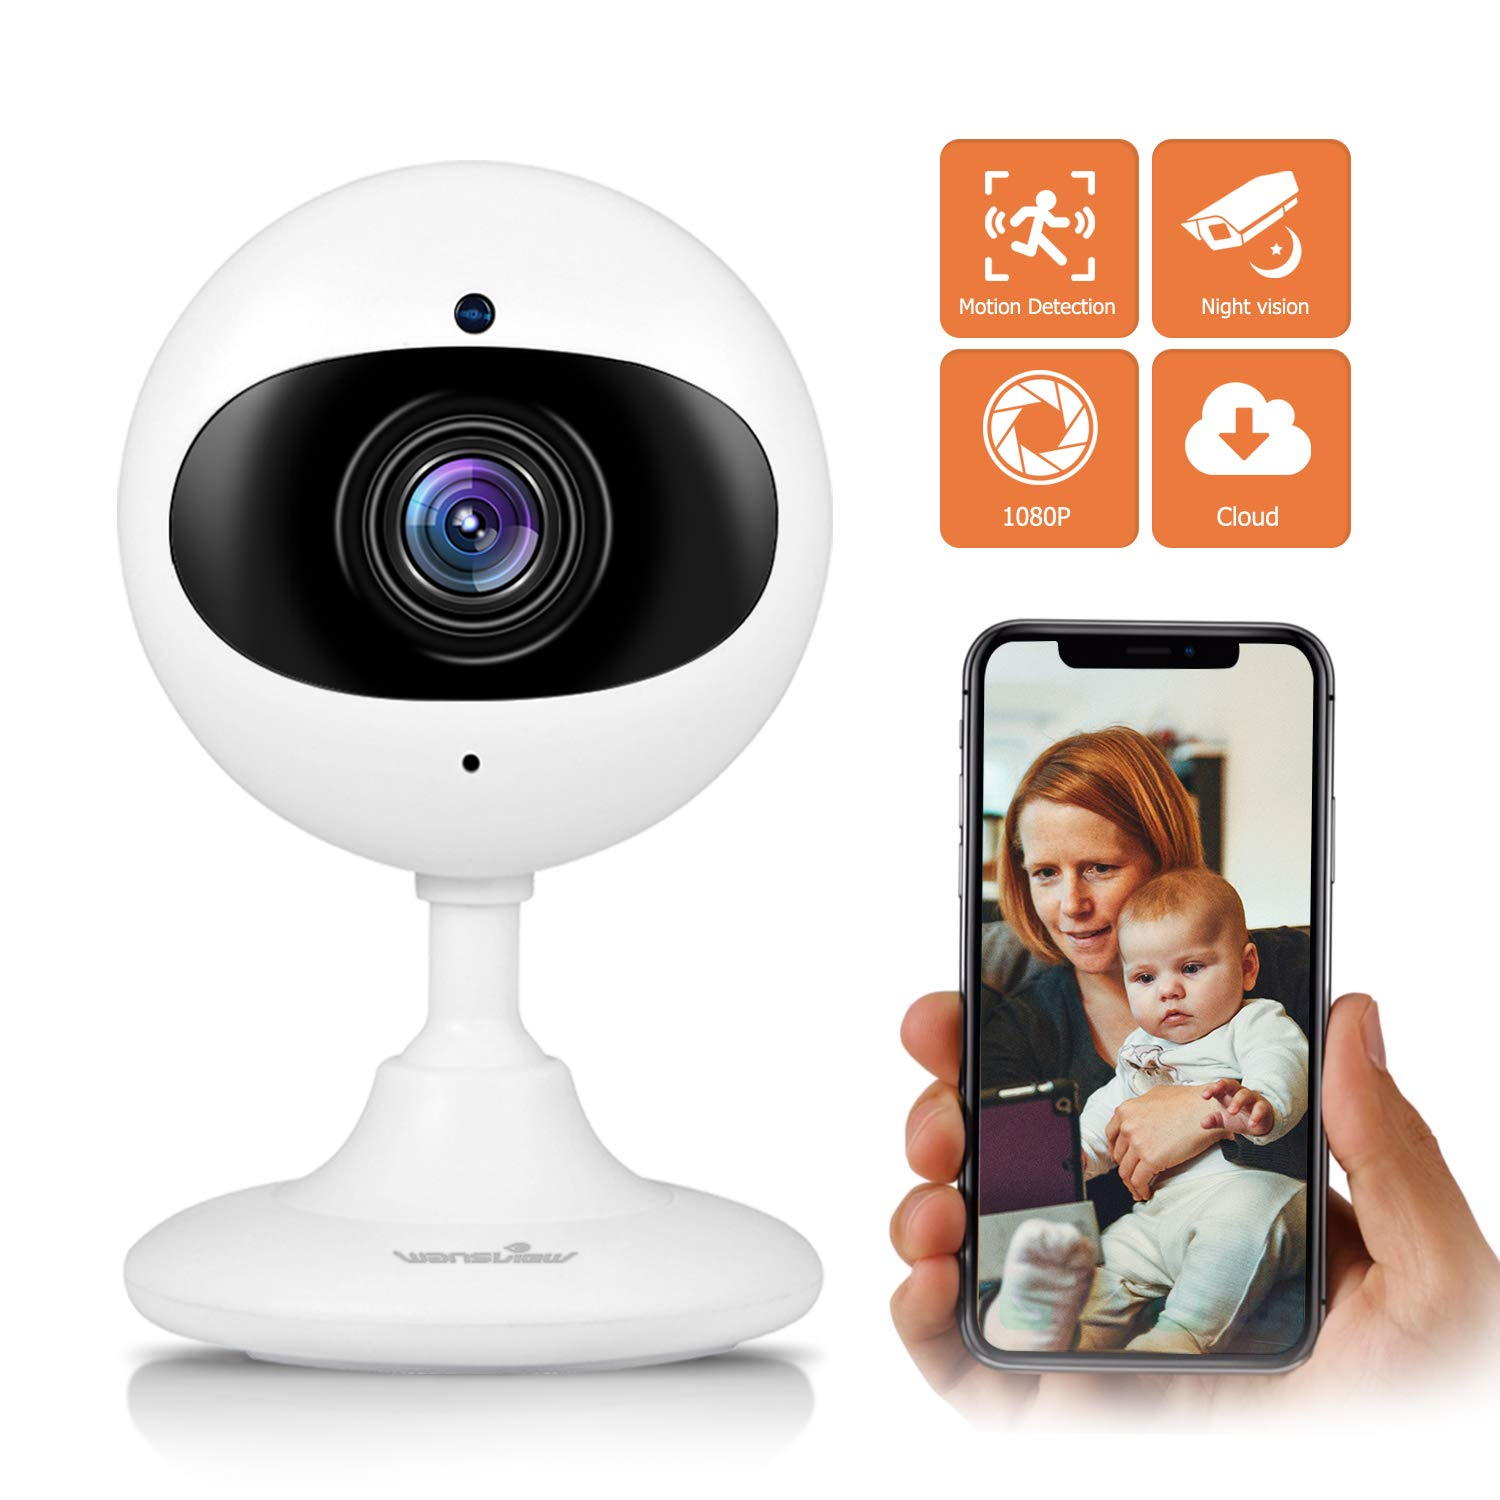 Wansview Wireless Security Camera, 1080P HD WiFi Home Security Indoor IP  Camera with Motion Detection, Night Vision and Two-Way Audio for